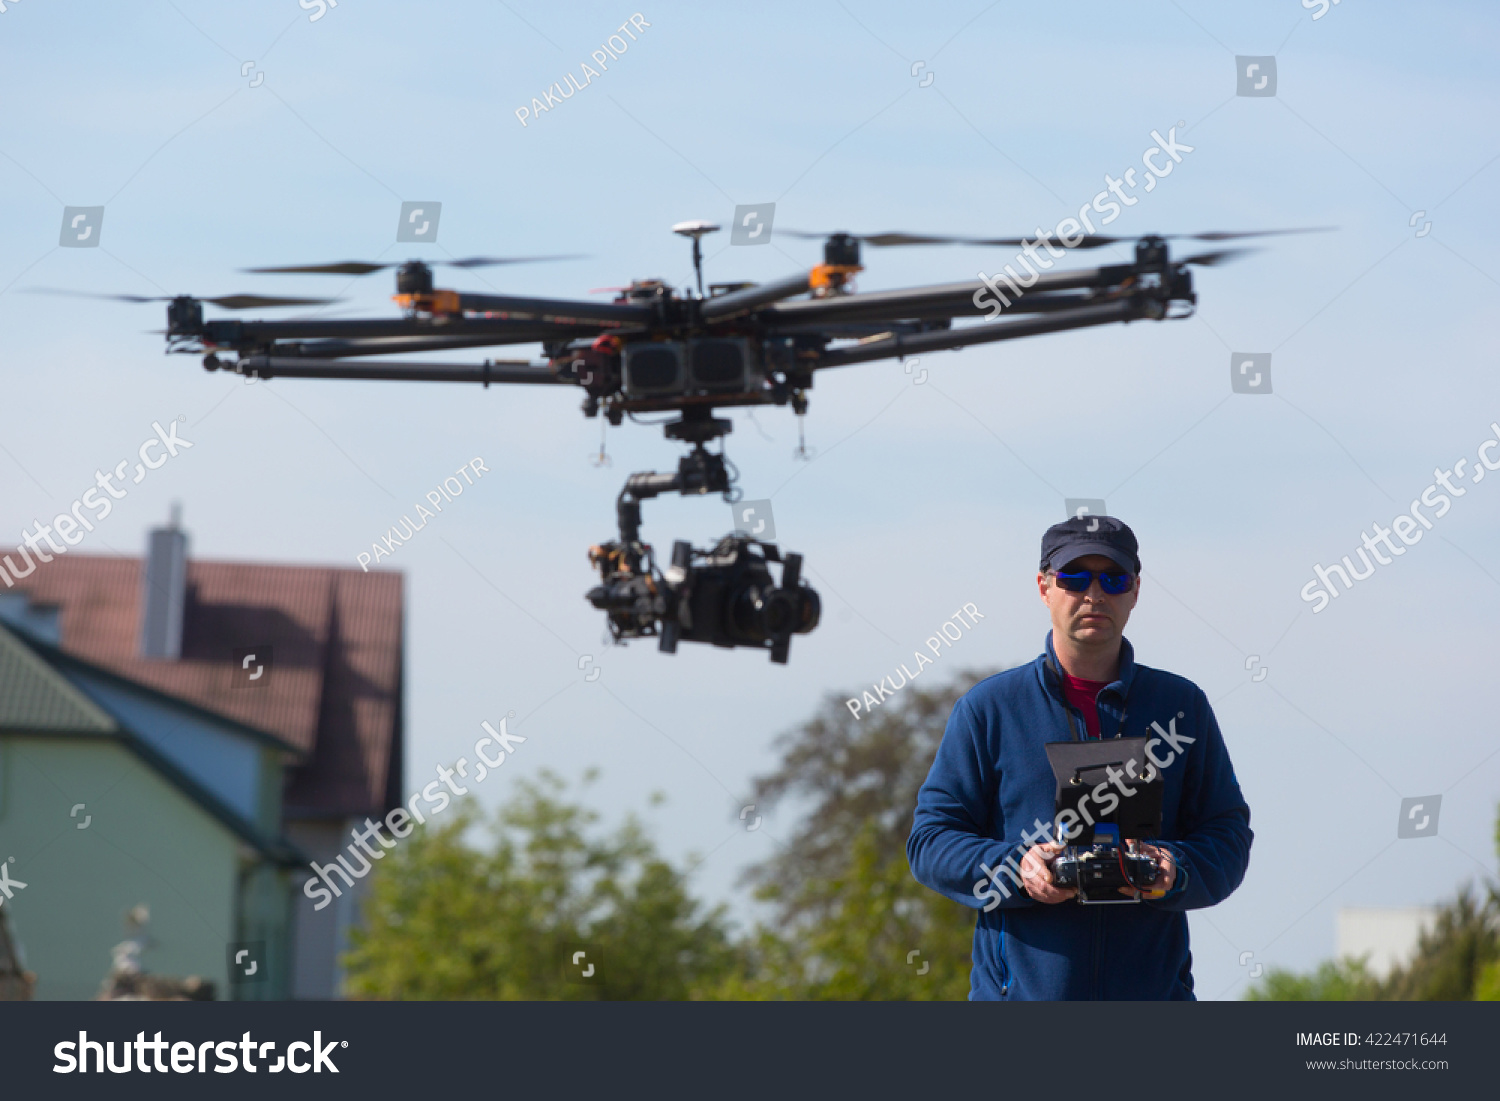 Drone. Unmanned Copter Flight. Pilot Flying Drone Stock Photo 422471644 : Shutterstock